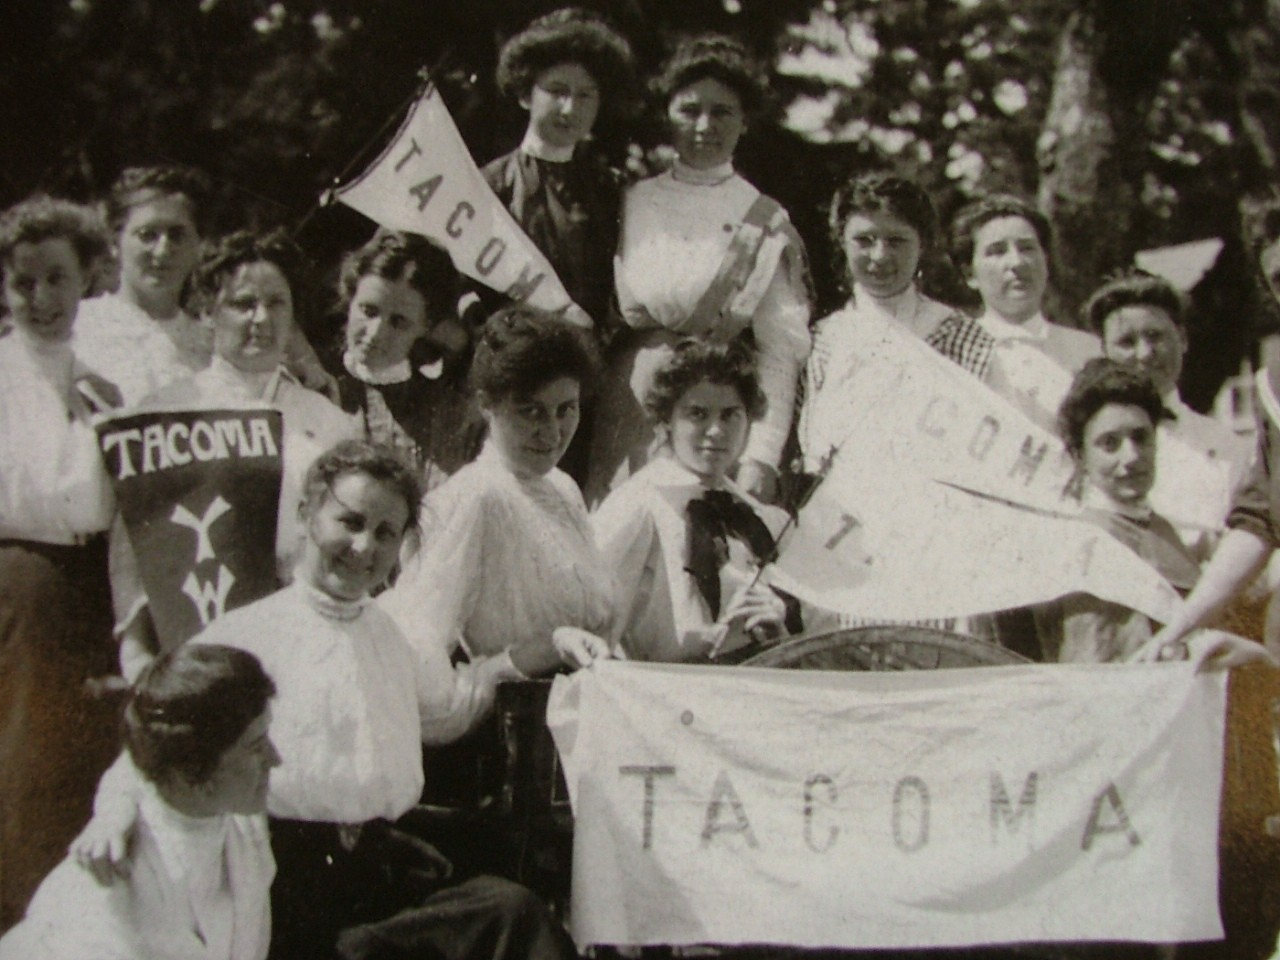 Women from 1906 charter of YWCA in Tacoma holding YWCA banners